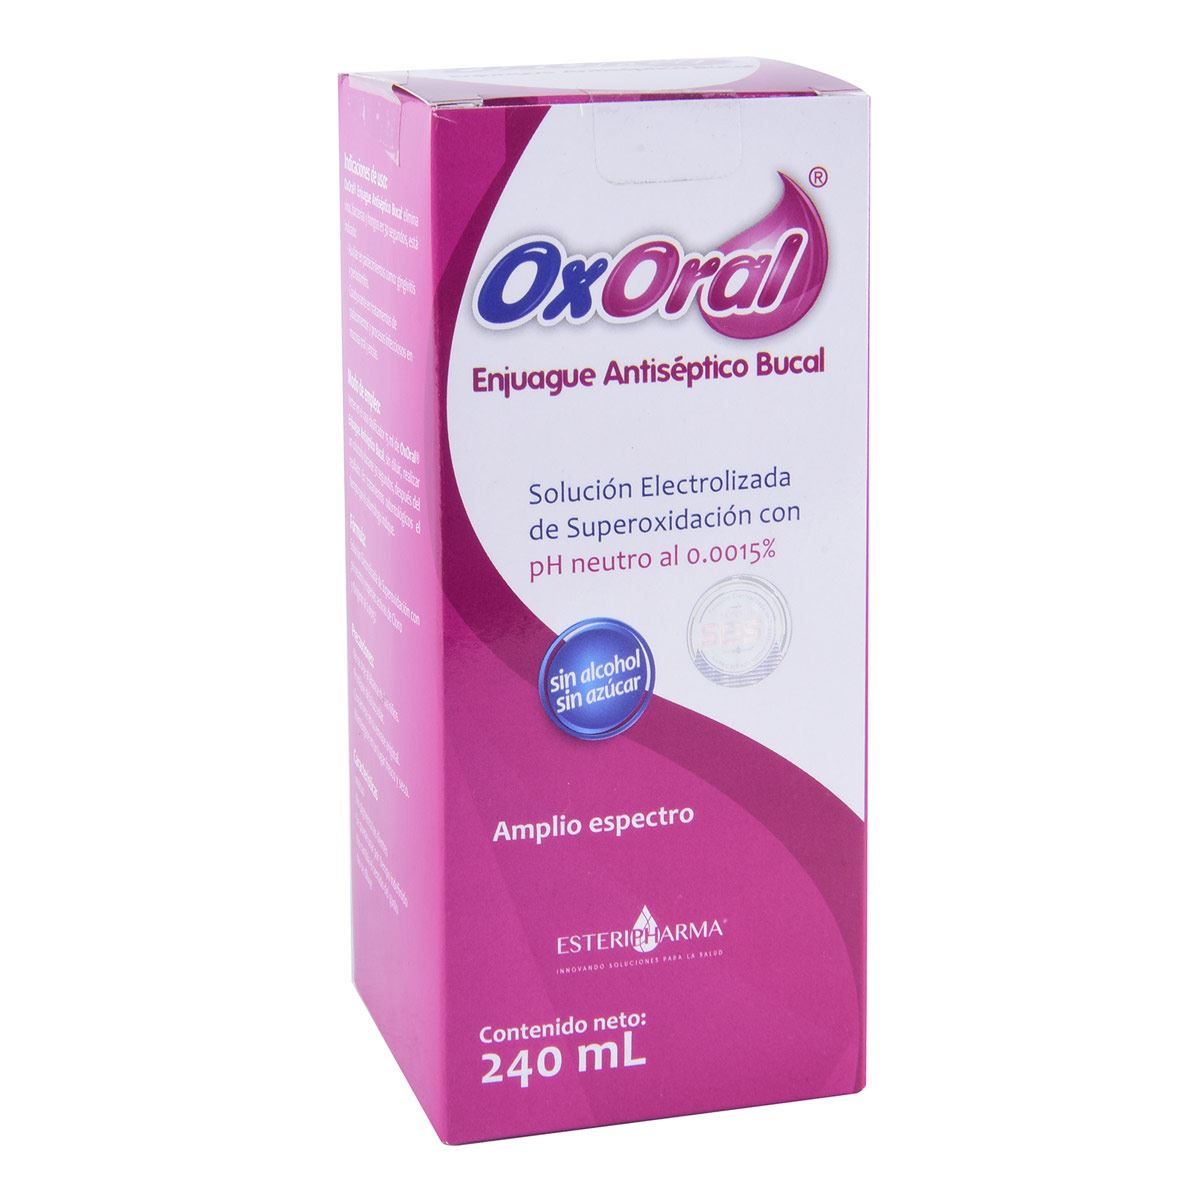 Oxoral Antiséptico Bucal